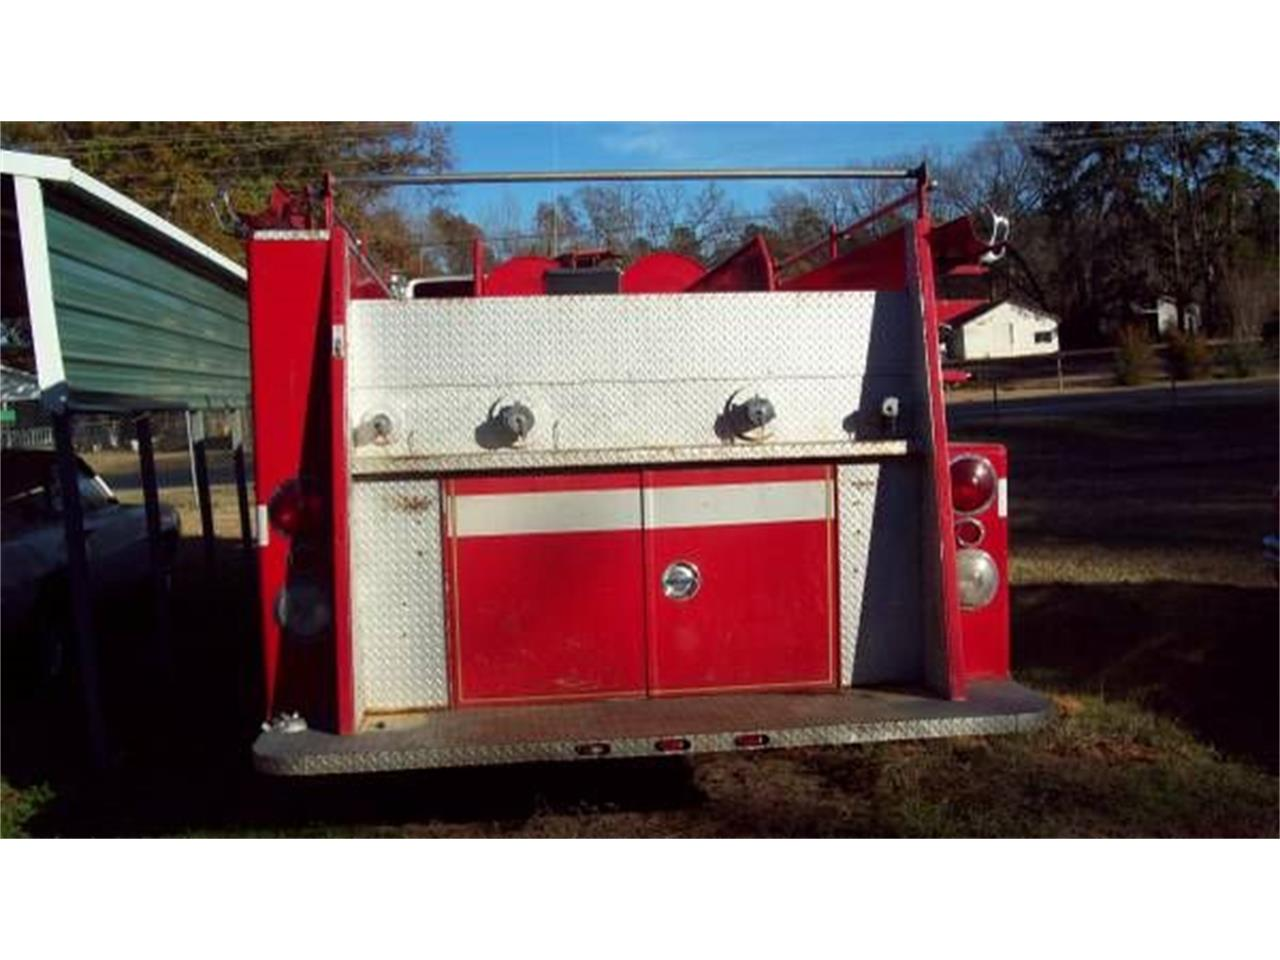 1977 Seagrave Fire Truck for sale in Cadillac, MI – photo 2